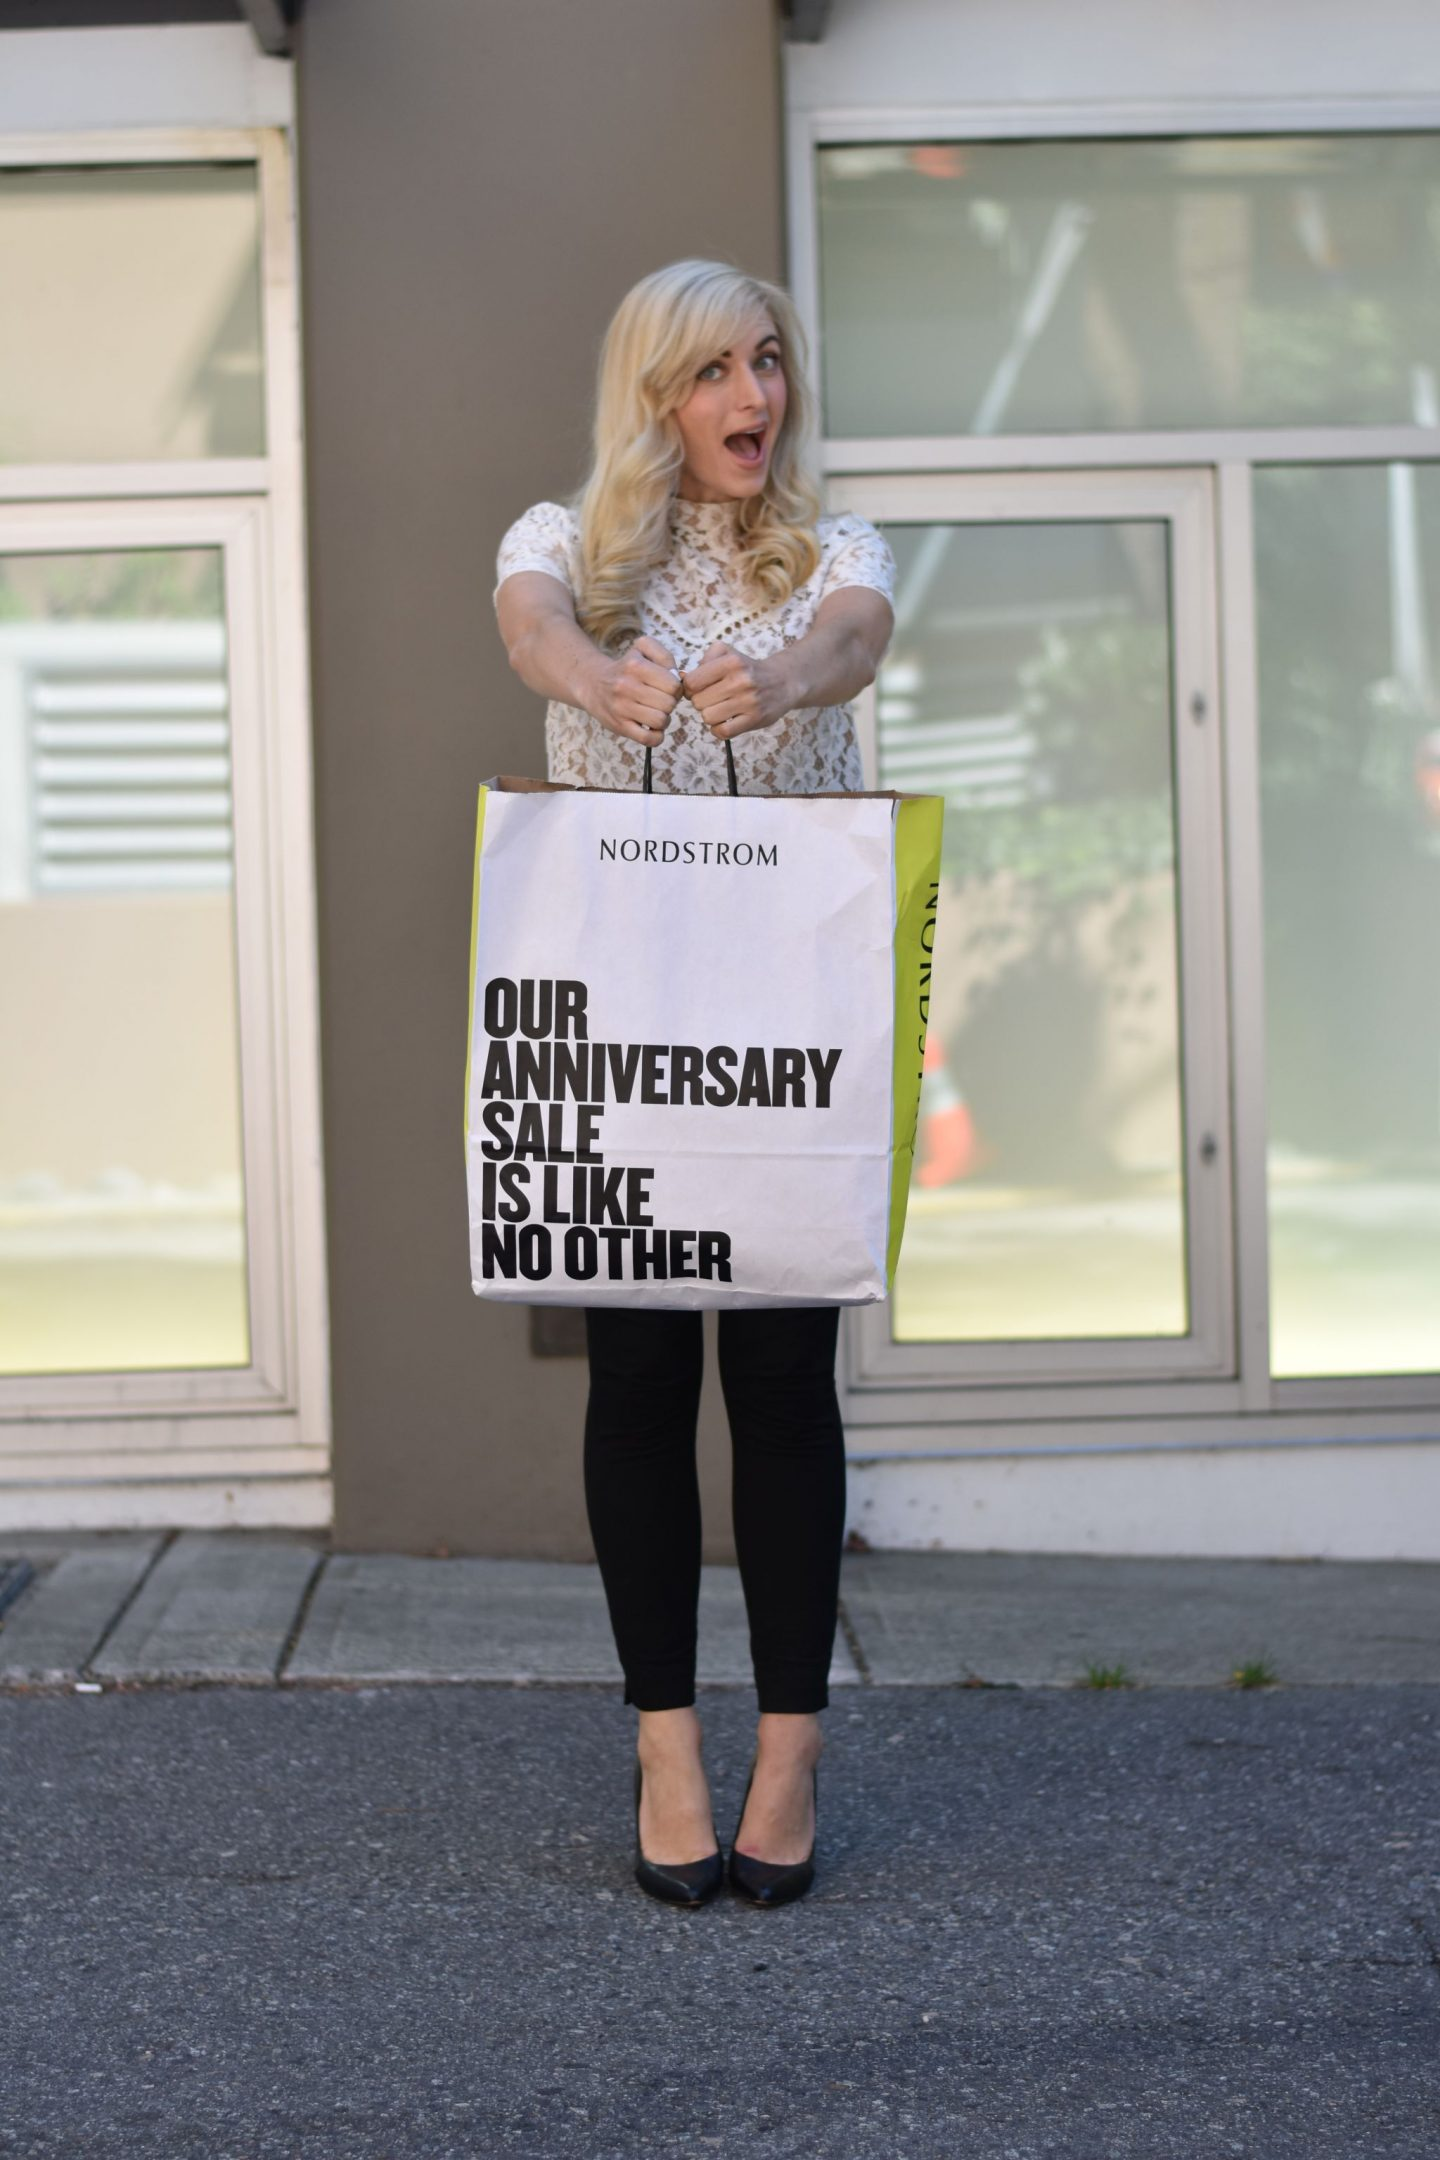 how to shop the nordstrom anniversary sale if you're in canada - woman holding nordstrom anniversary sale bag